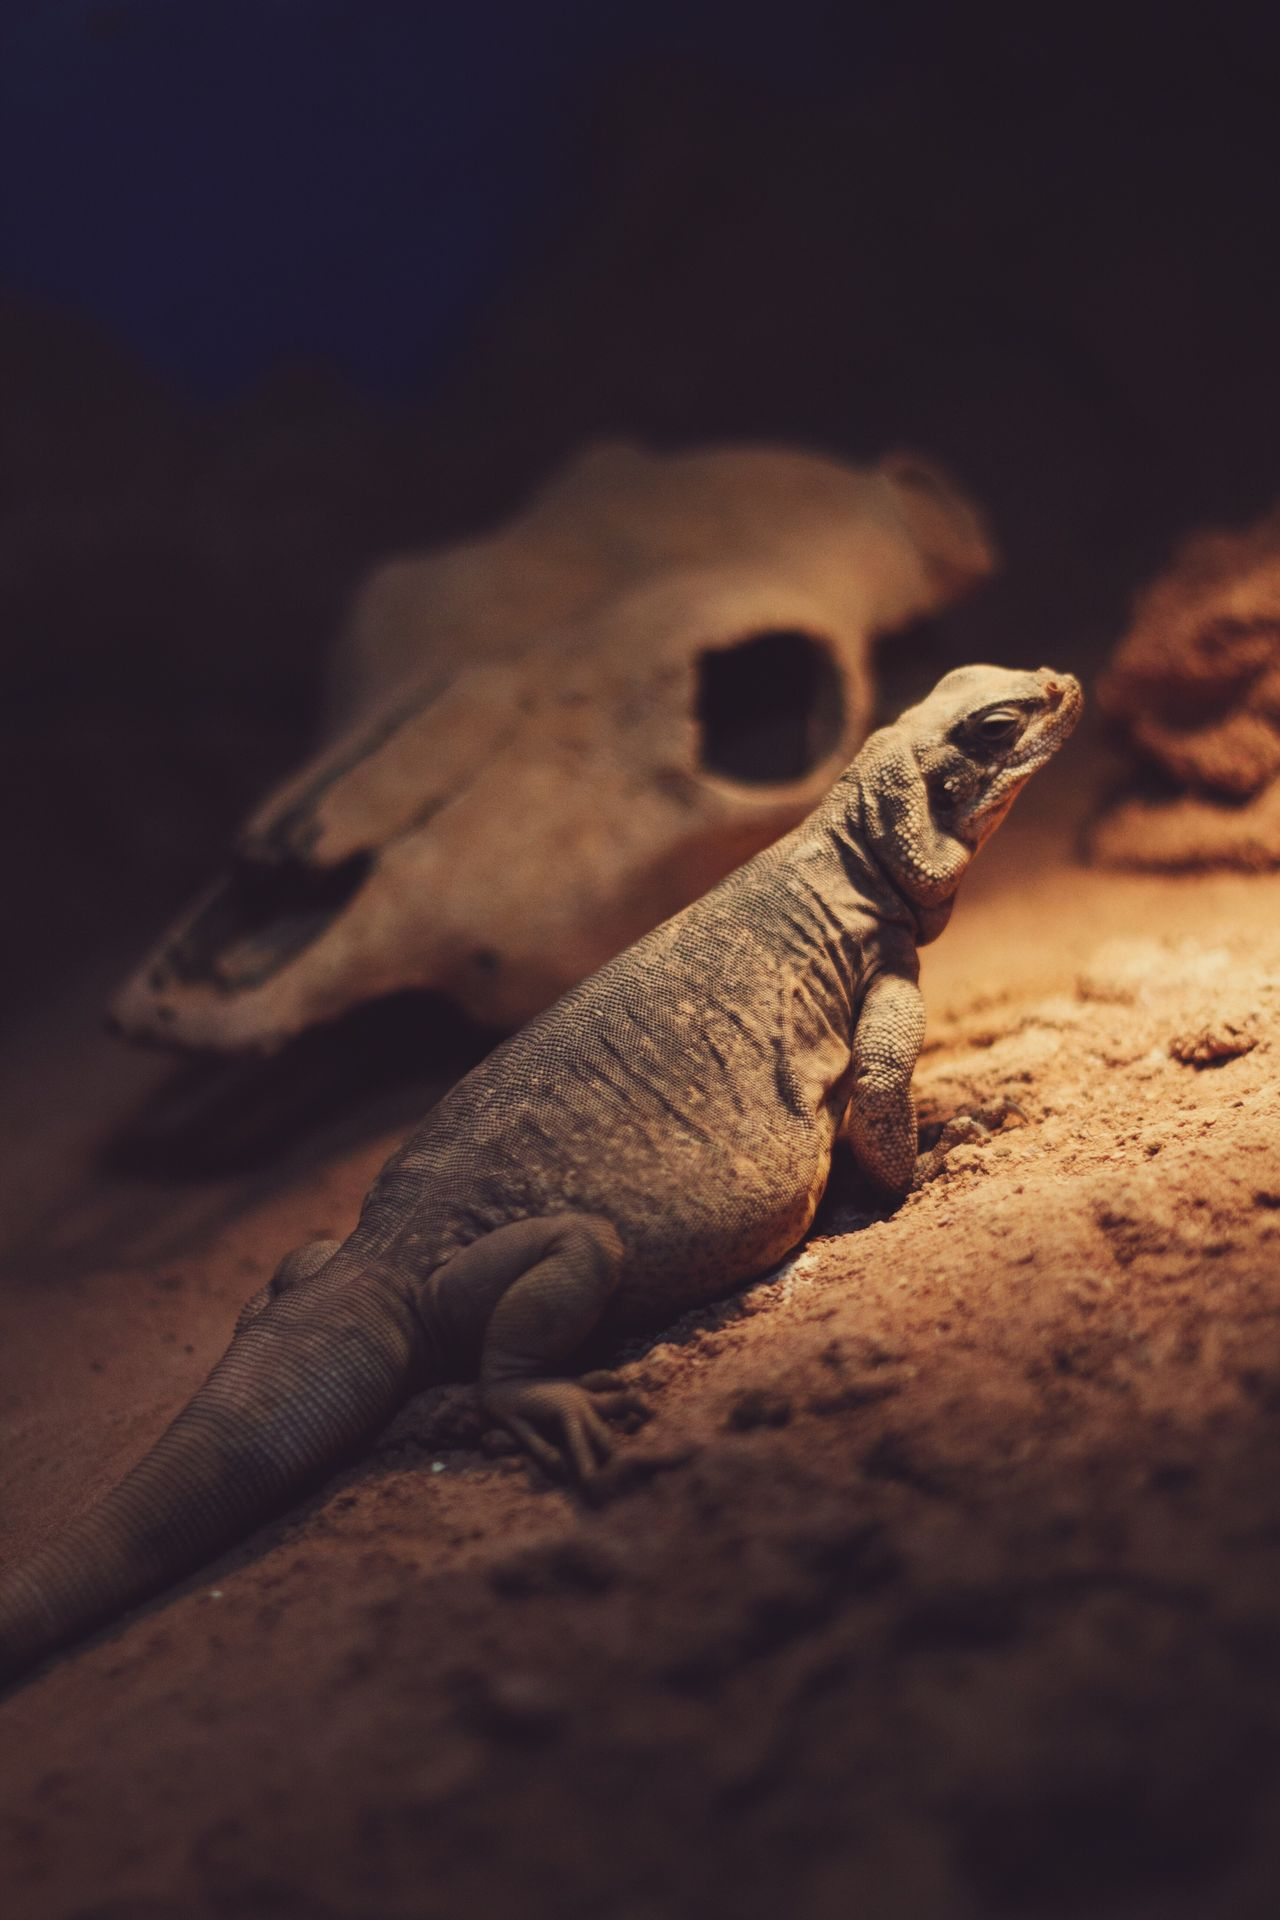 Selective Focus Close-up Dead Animal Shore Man Made Object No People Tranquility Snout Majestic Zoology Beauty In Nature Nature Wildlife Animals In The Wild Rock